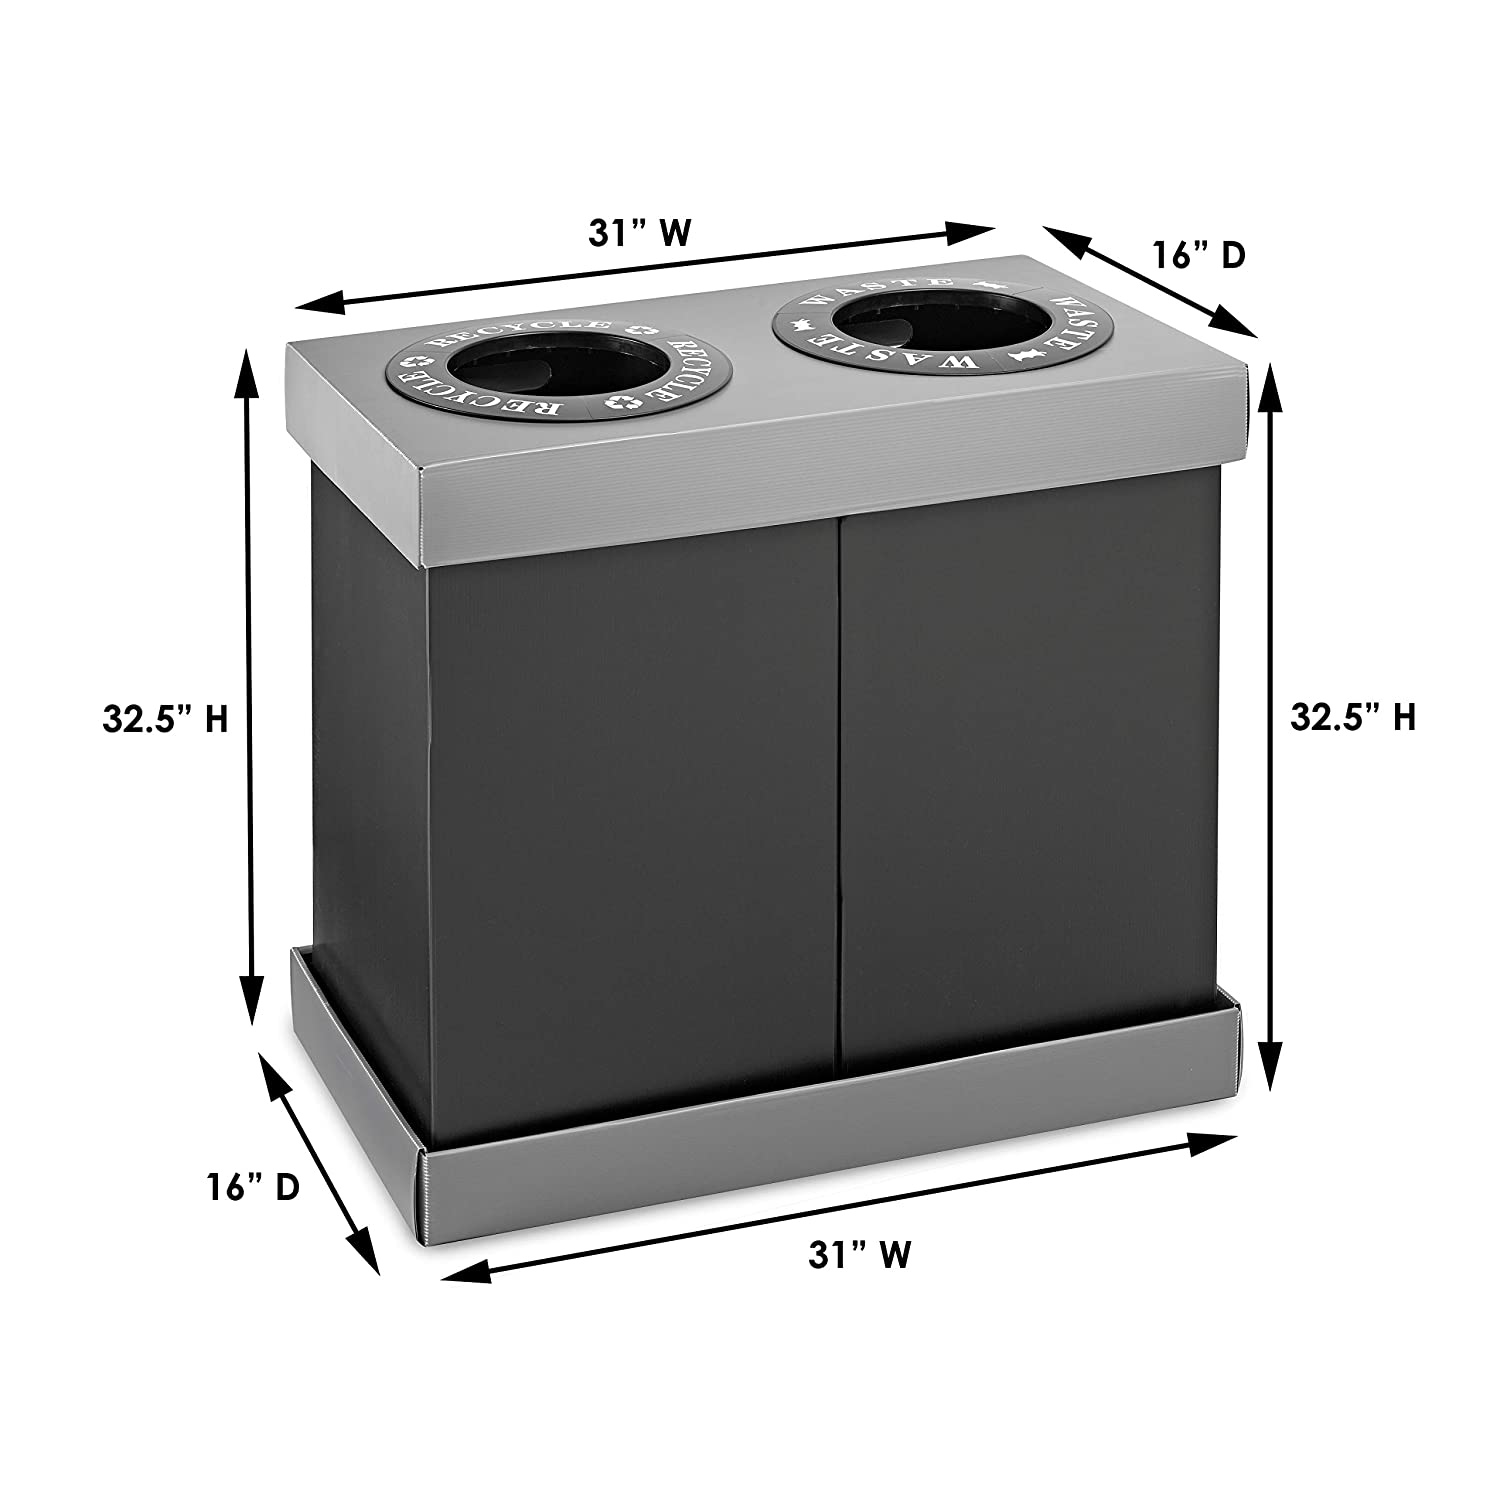 Alpine Industries Recycling Center 28 Gallons - Durable Corrugated Plastic  Waste/Trash Organizer Ideal for Kitchen Office Hospital Commercial Use (2  ...